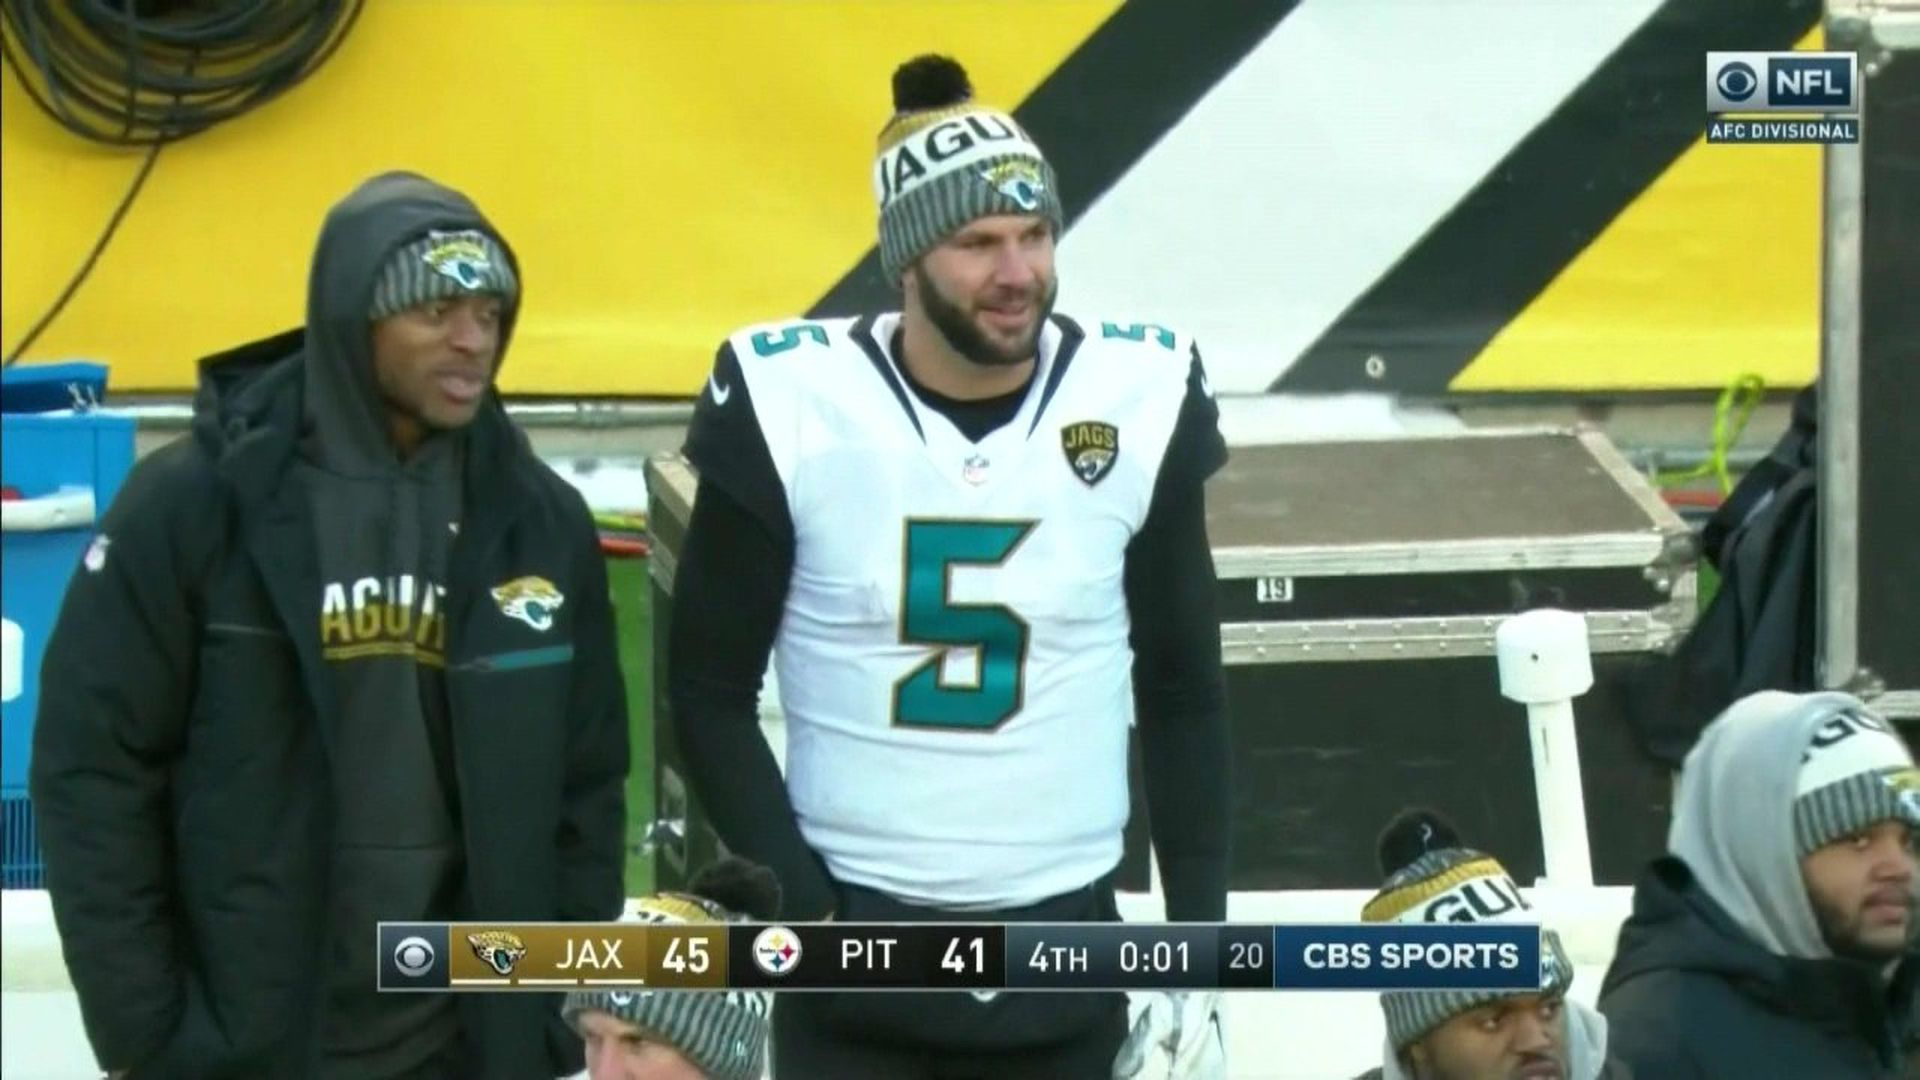 Jaguars fans flooded Heinz Field with DUUUUVAL chants to make the Steelers' day that much worse